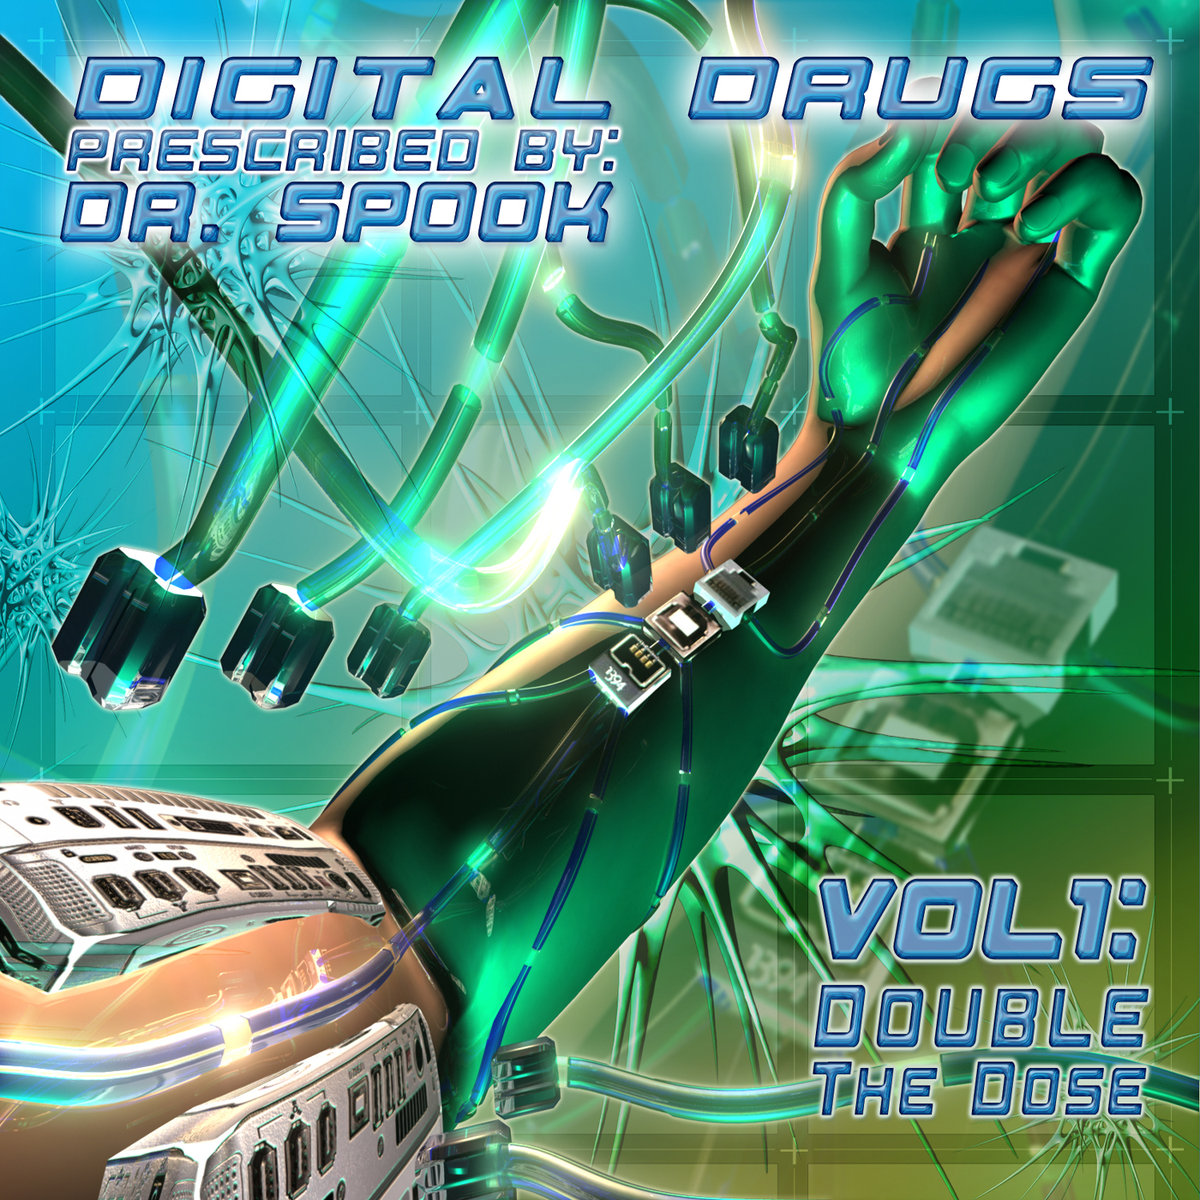 Facehead - Mission Statement @ 'Various Artists - Digital Drugs Vol.1: Double the Dose (Prescribed by Dr. Spook)' album (electronic, goa)